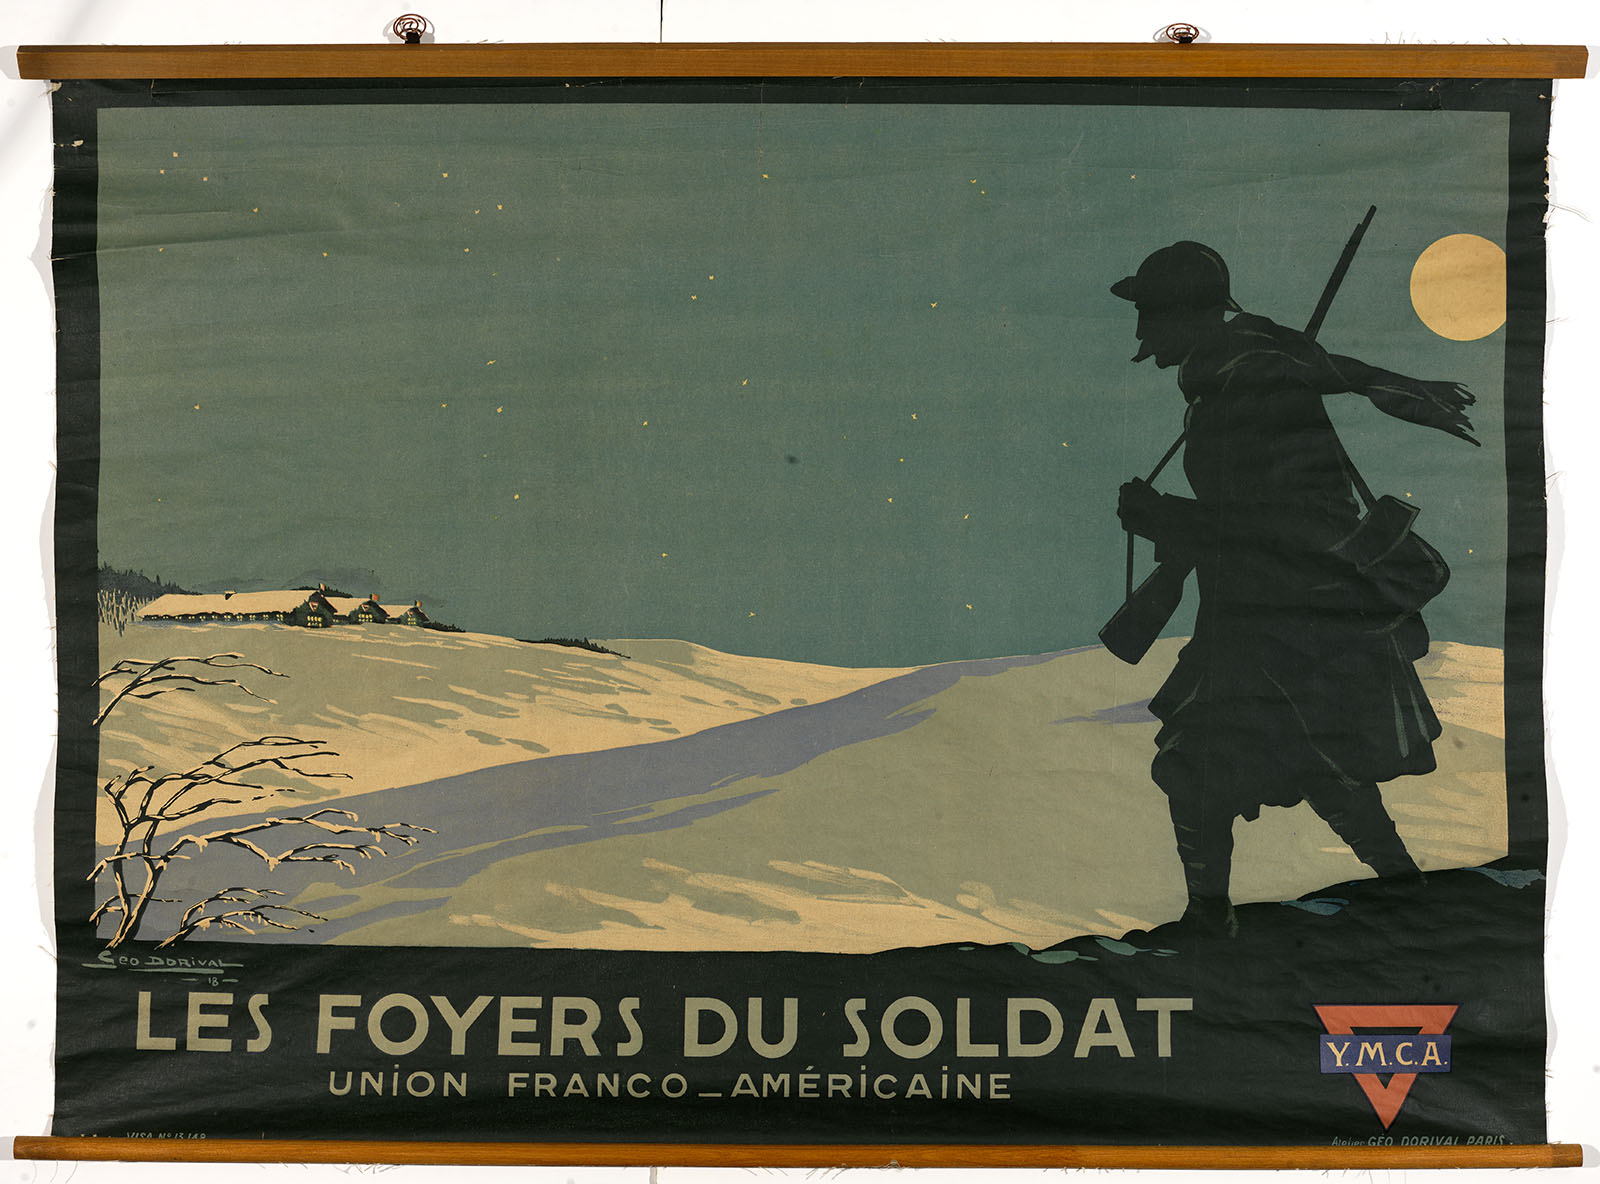 Géo. Dorival, Les Foyers du Soldat- Union Franco-Américaine. Y.M.C.A. (Paris, 1918). Color lithograph. Gift of Mrs. Franklin S. Edmonds.